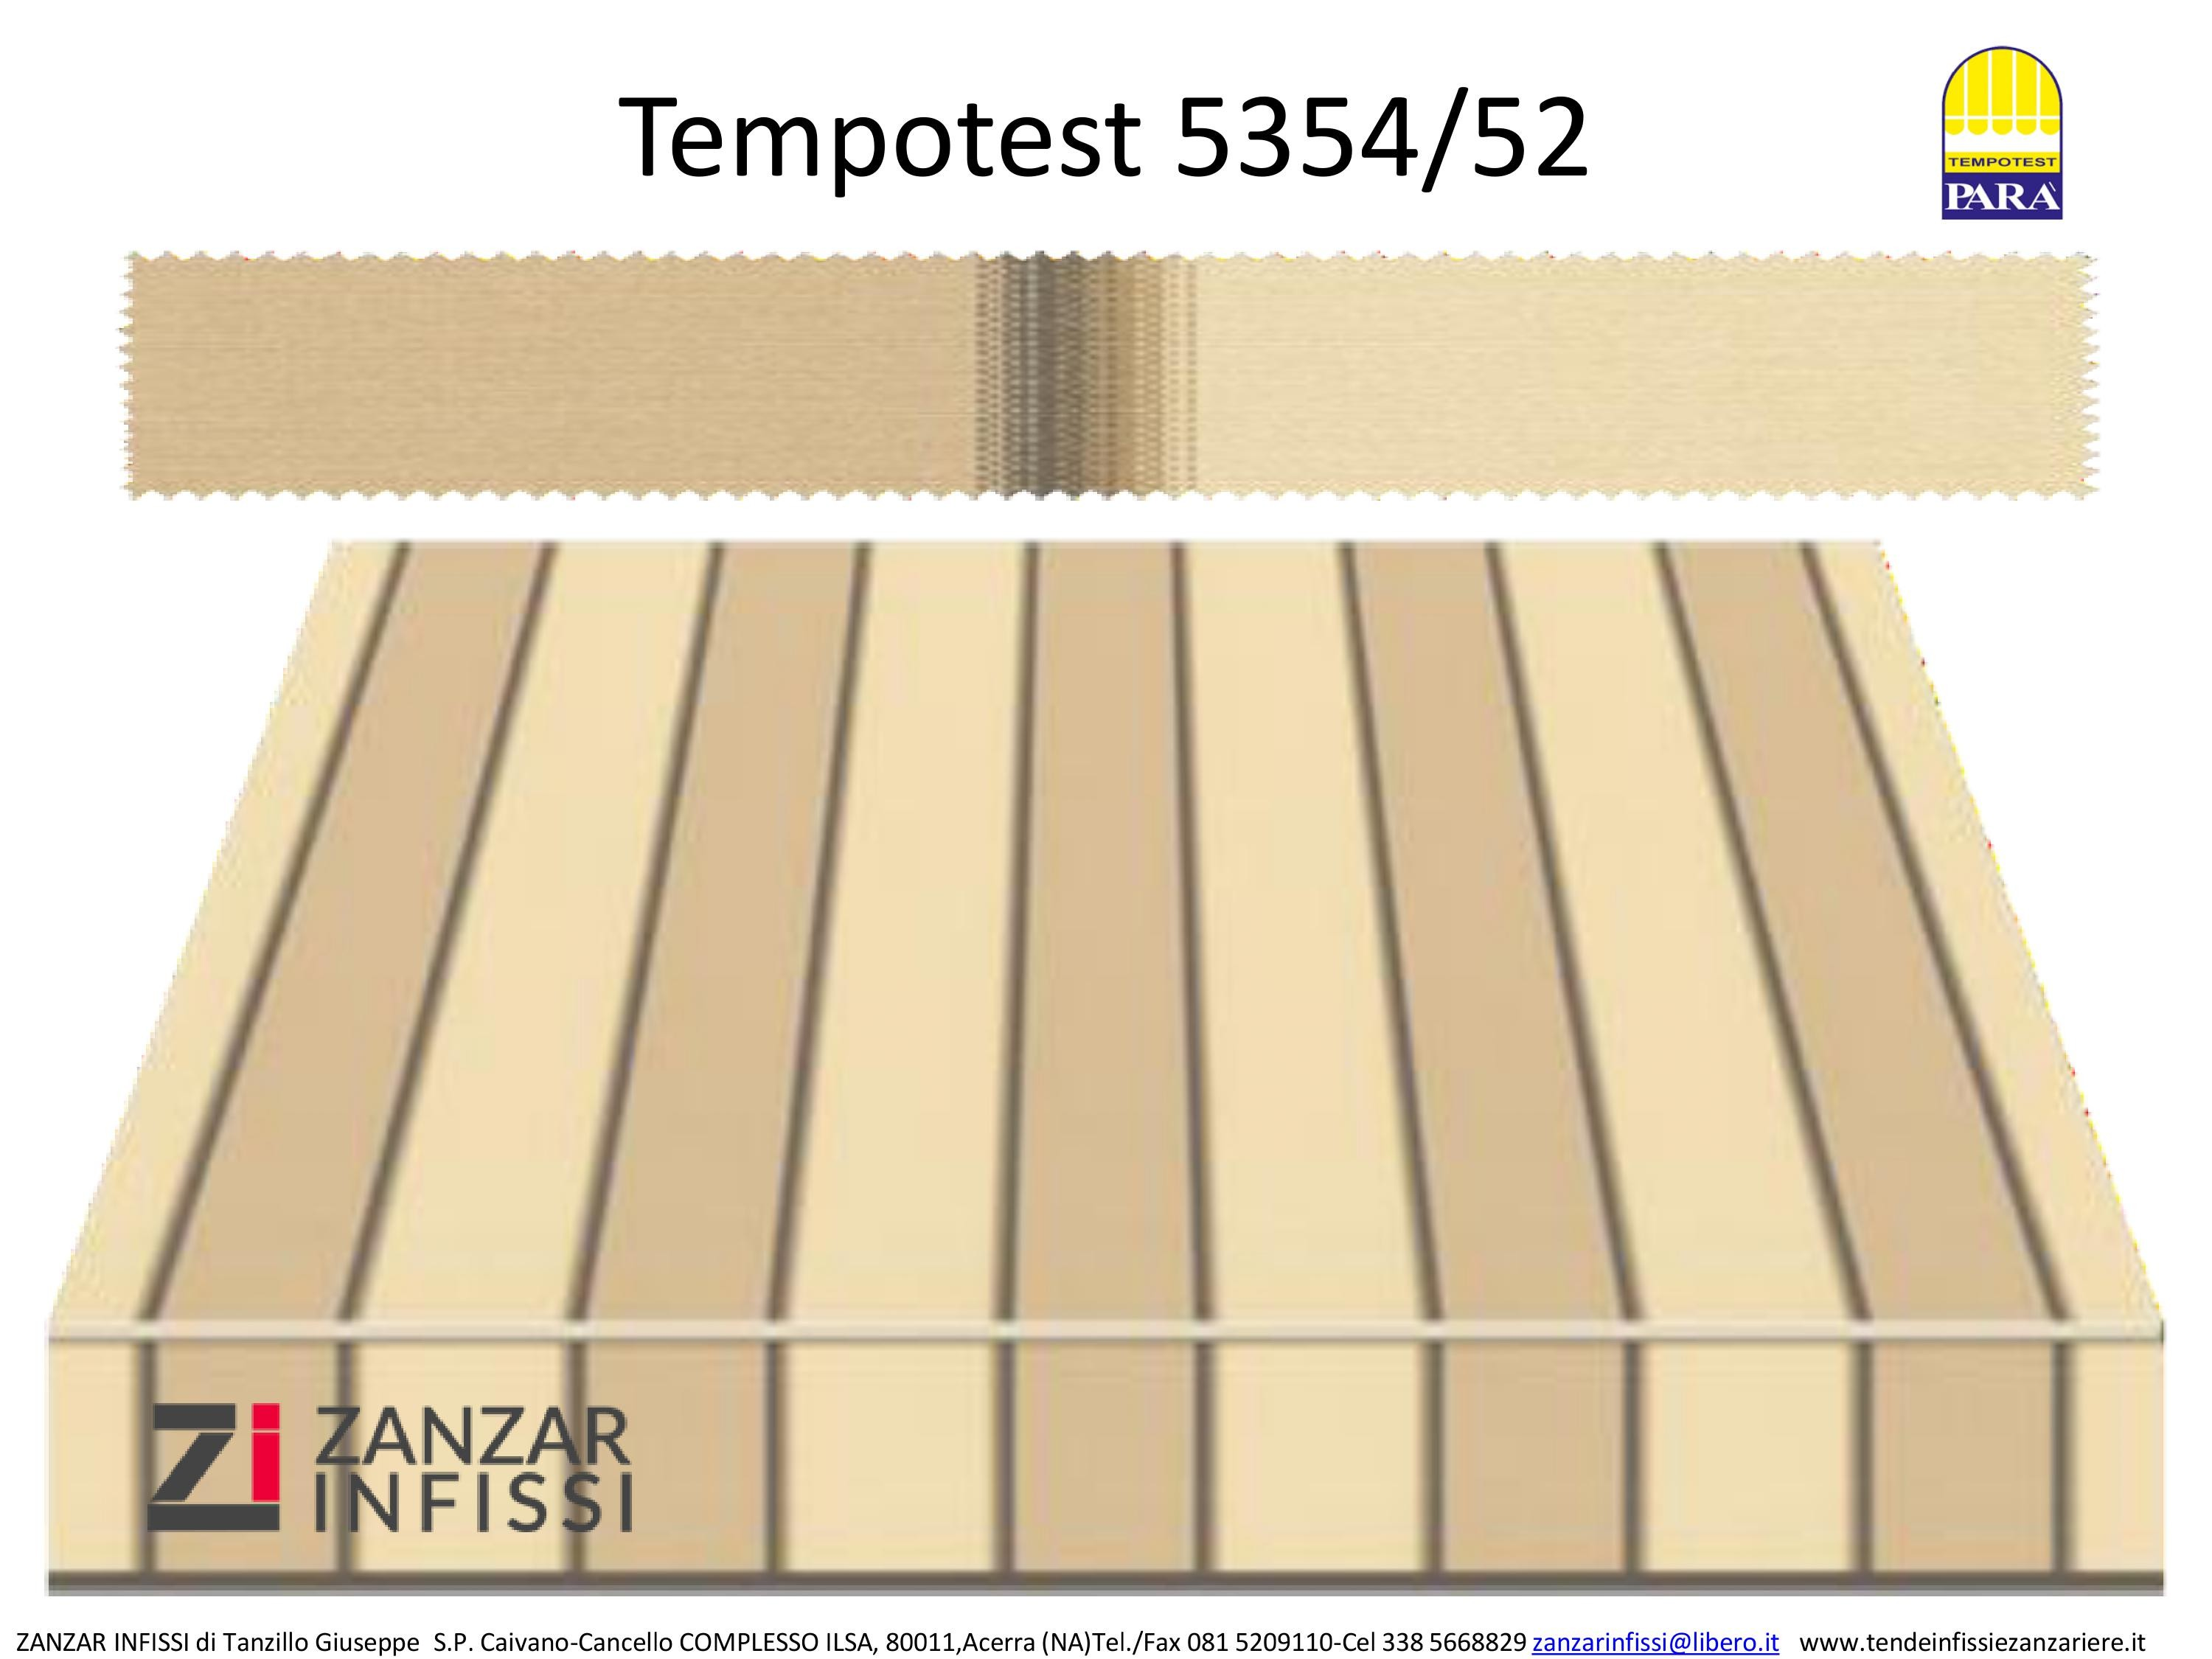 Tempotest 5354/52